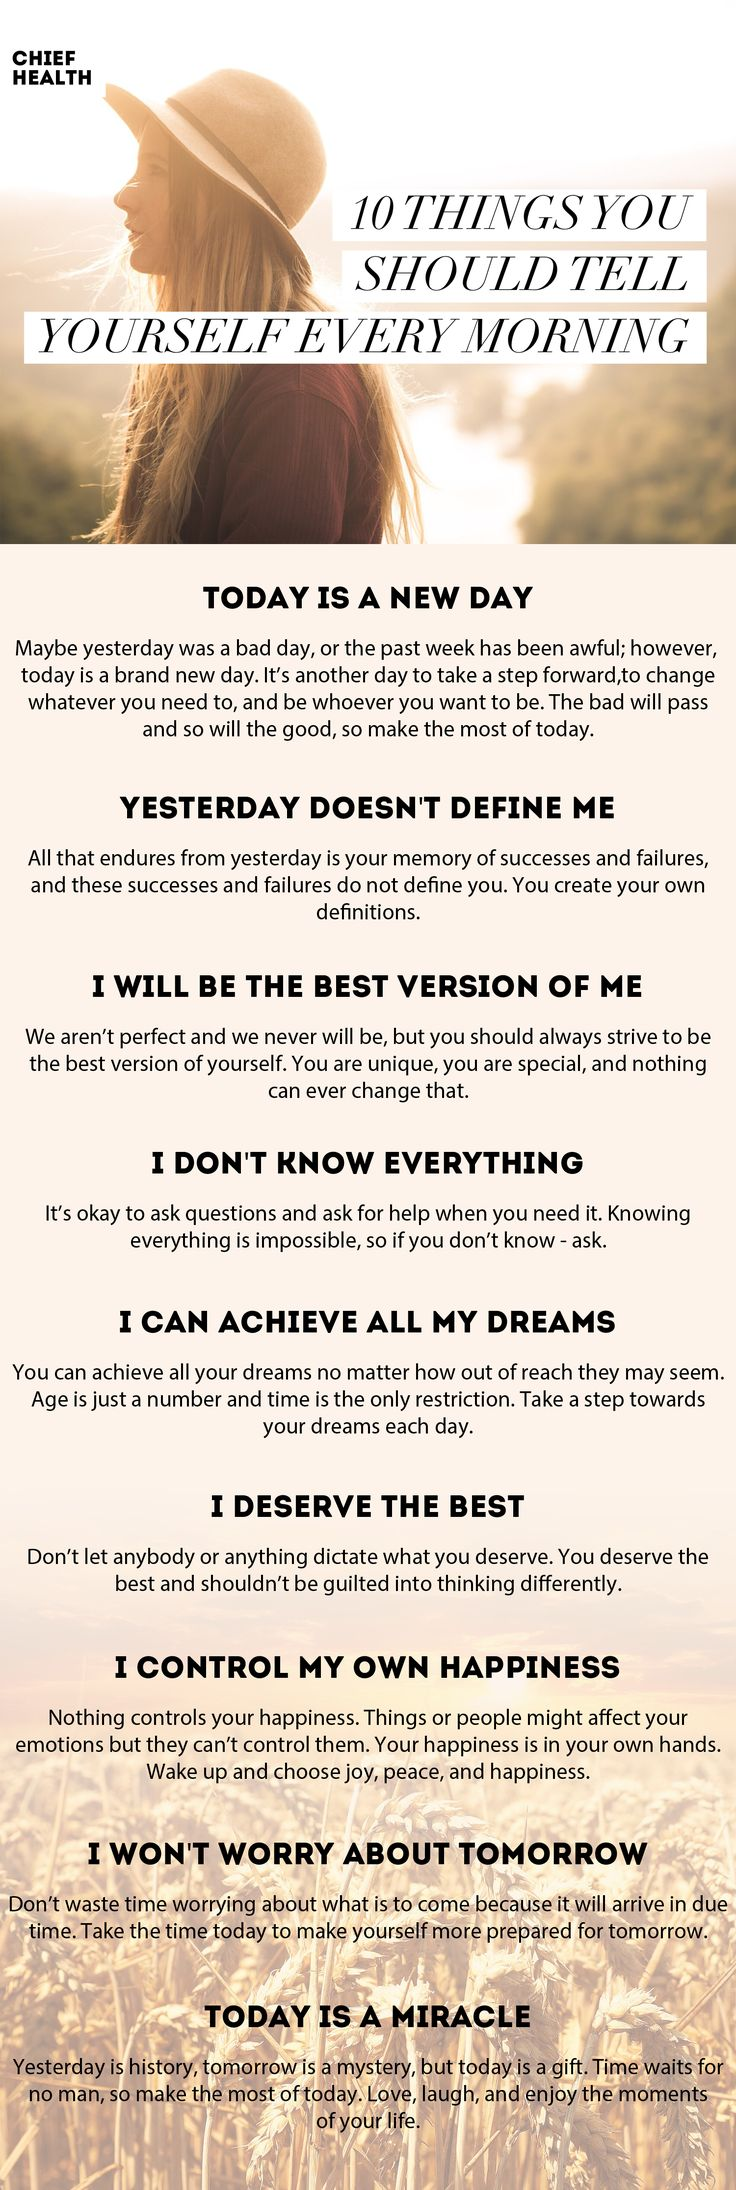 Fight For Your Life Quotes 2571 Best Personal Development Ideas Images On Pinterest